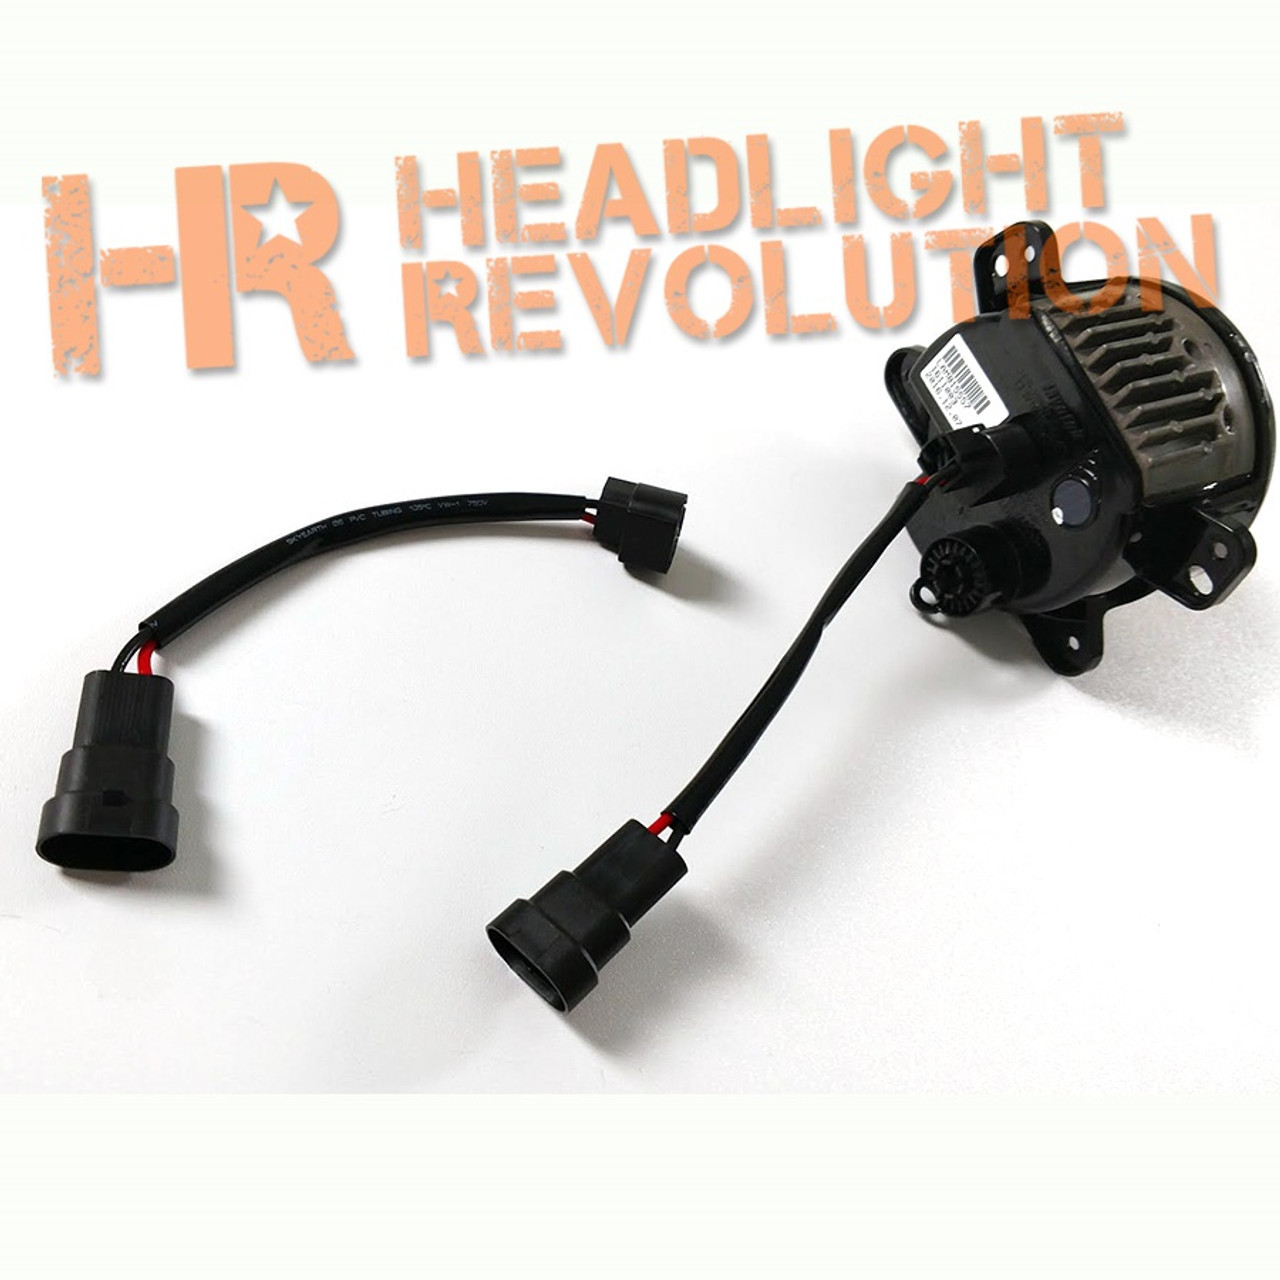 hight resolution of  headlight revolution 9005 male to 2504 adapter wire harnesses on vw beetle headlight